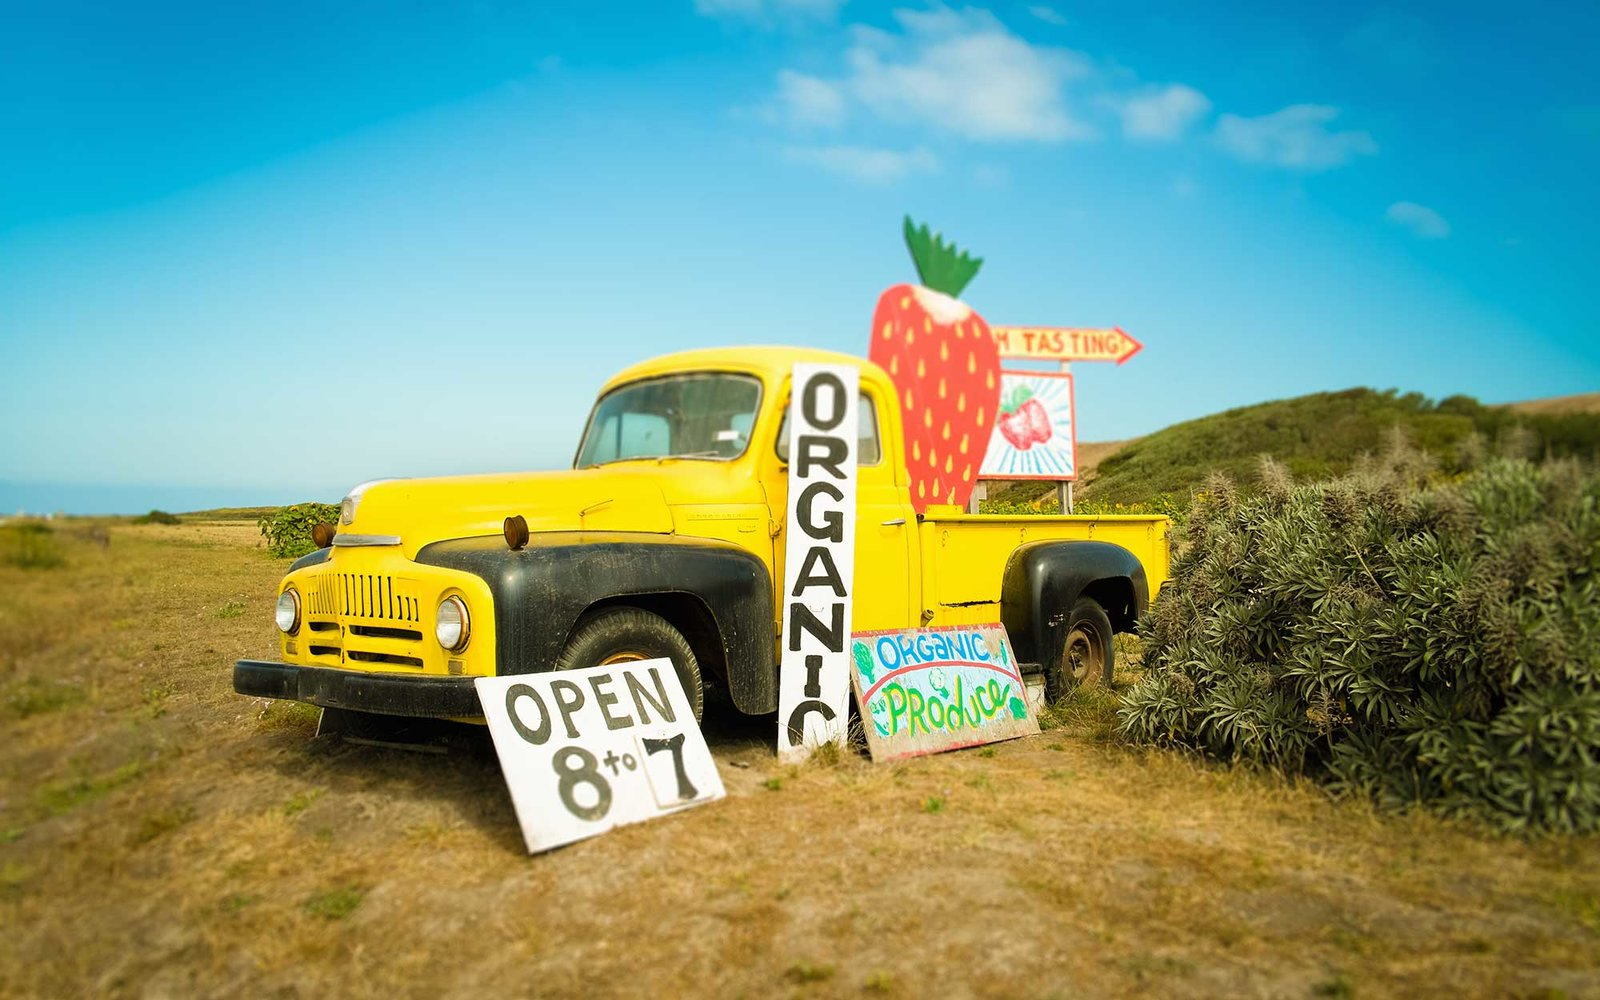 Yellow pickup truck and strawberry jam advertisement on roadside, Big Sur, Davenport, California, USA